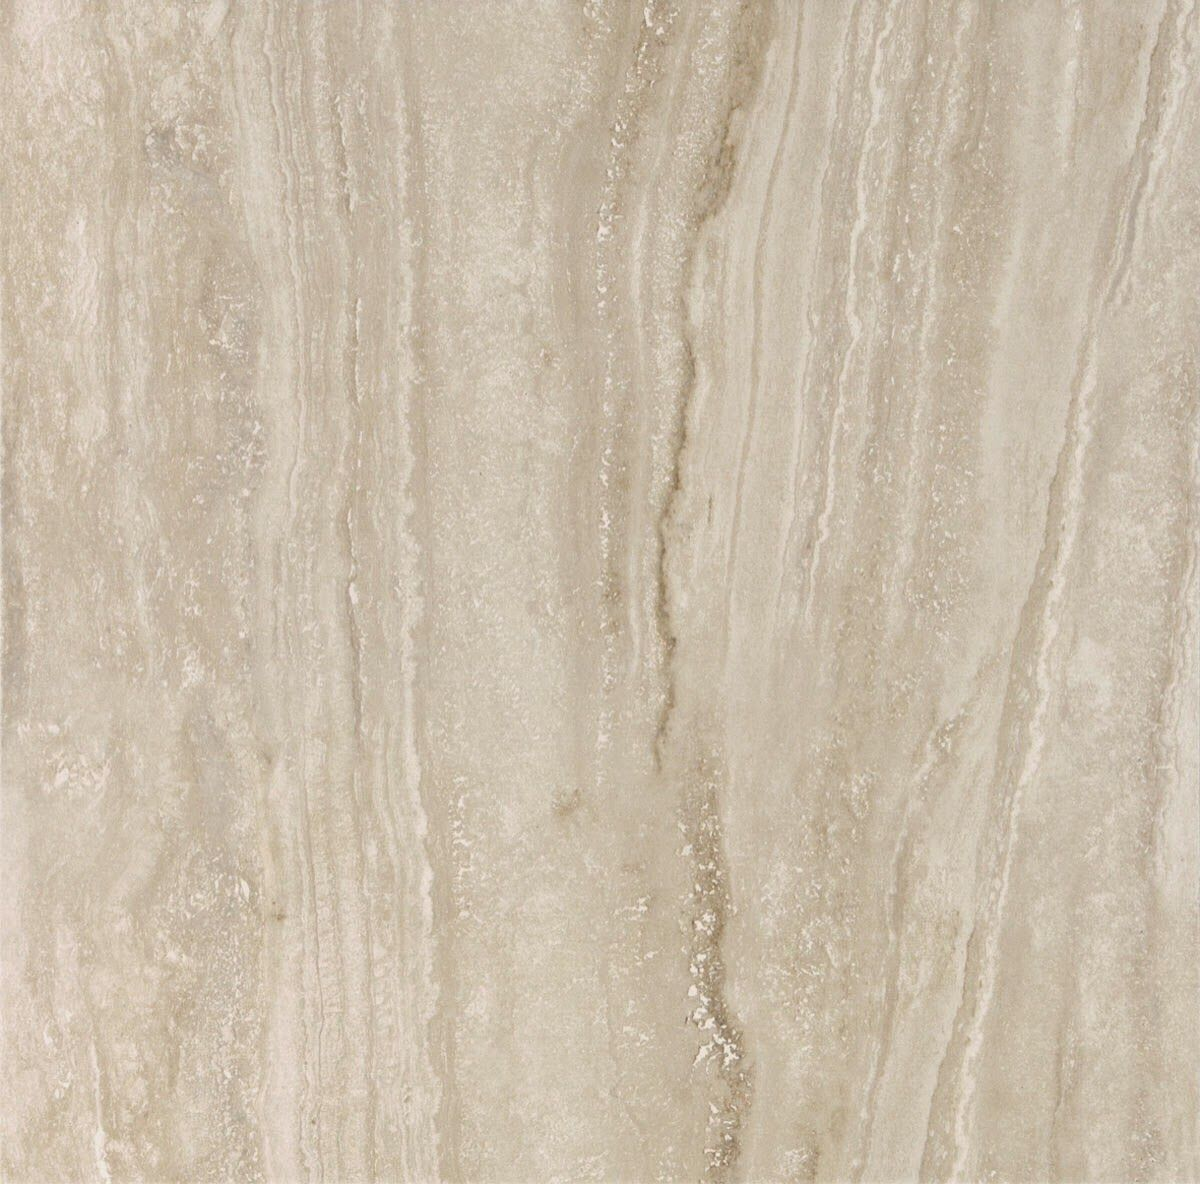 Piso travertino navona crema porcelanato portobello for Pisos de travertino rustico